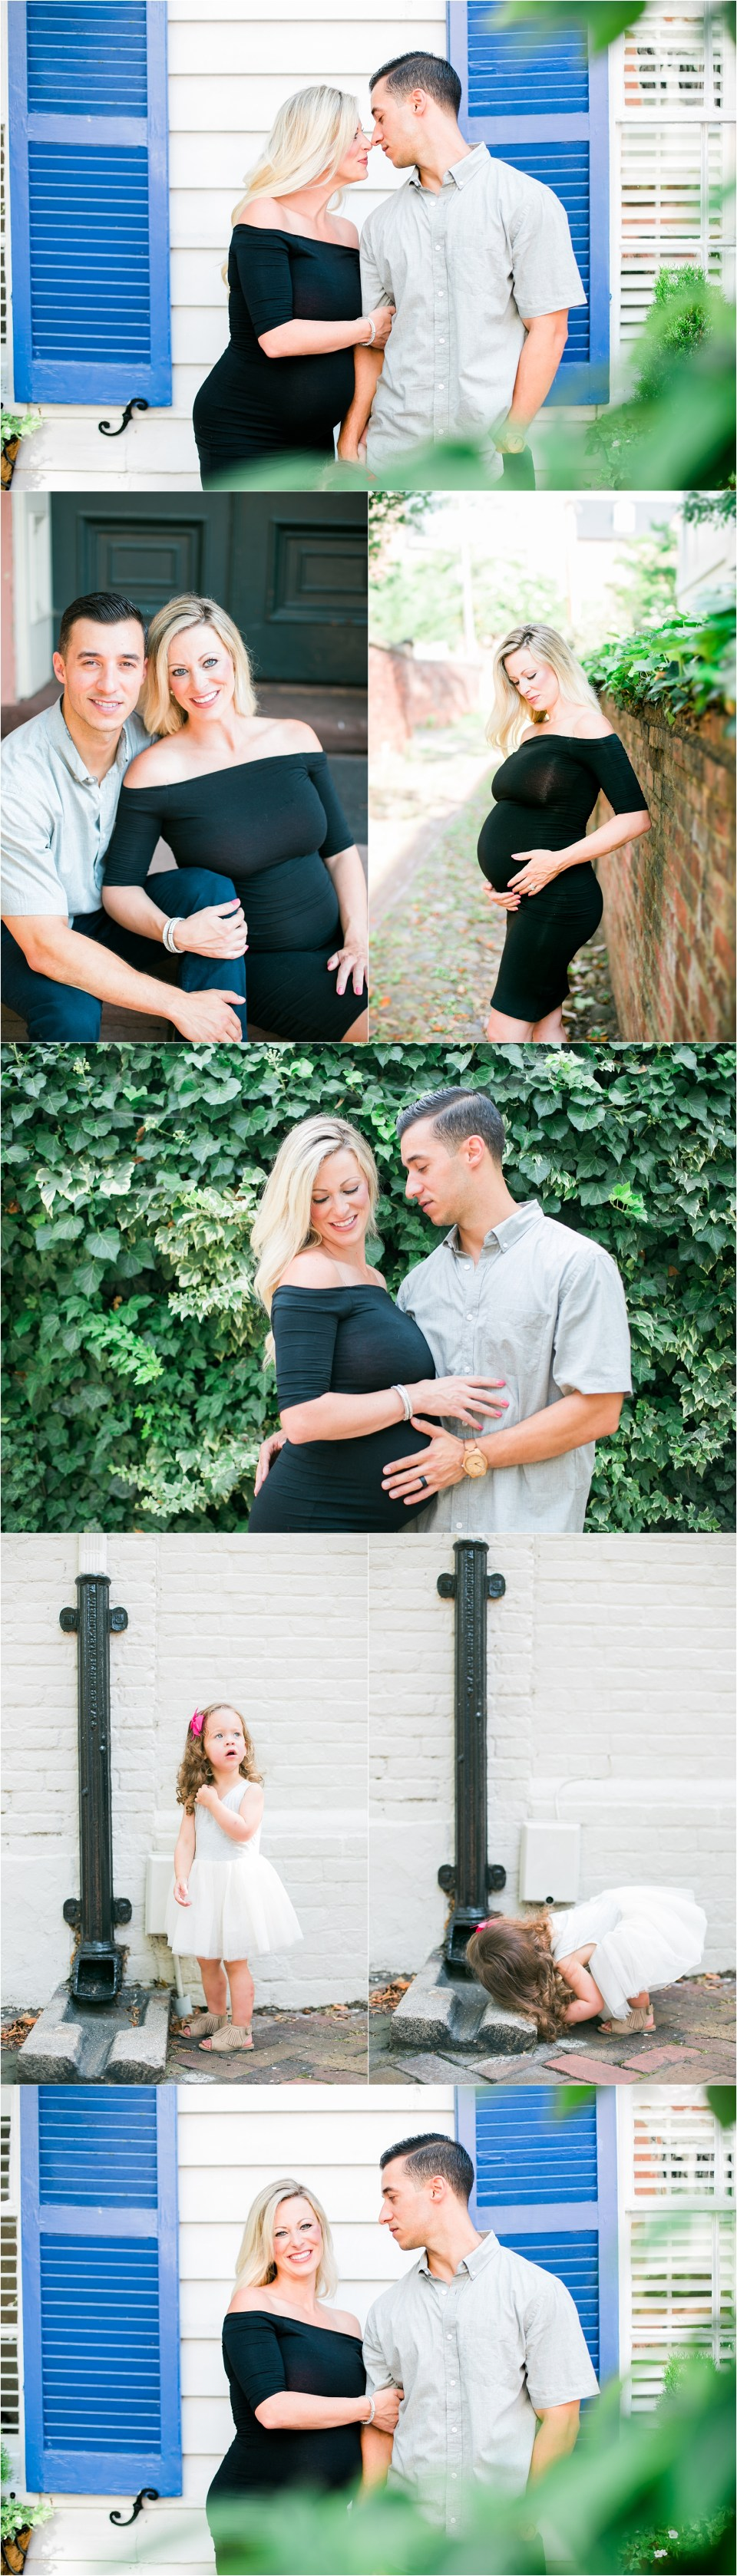 Costola Photography, Alexandria Photographer, Alexandria Maternity Session